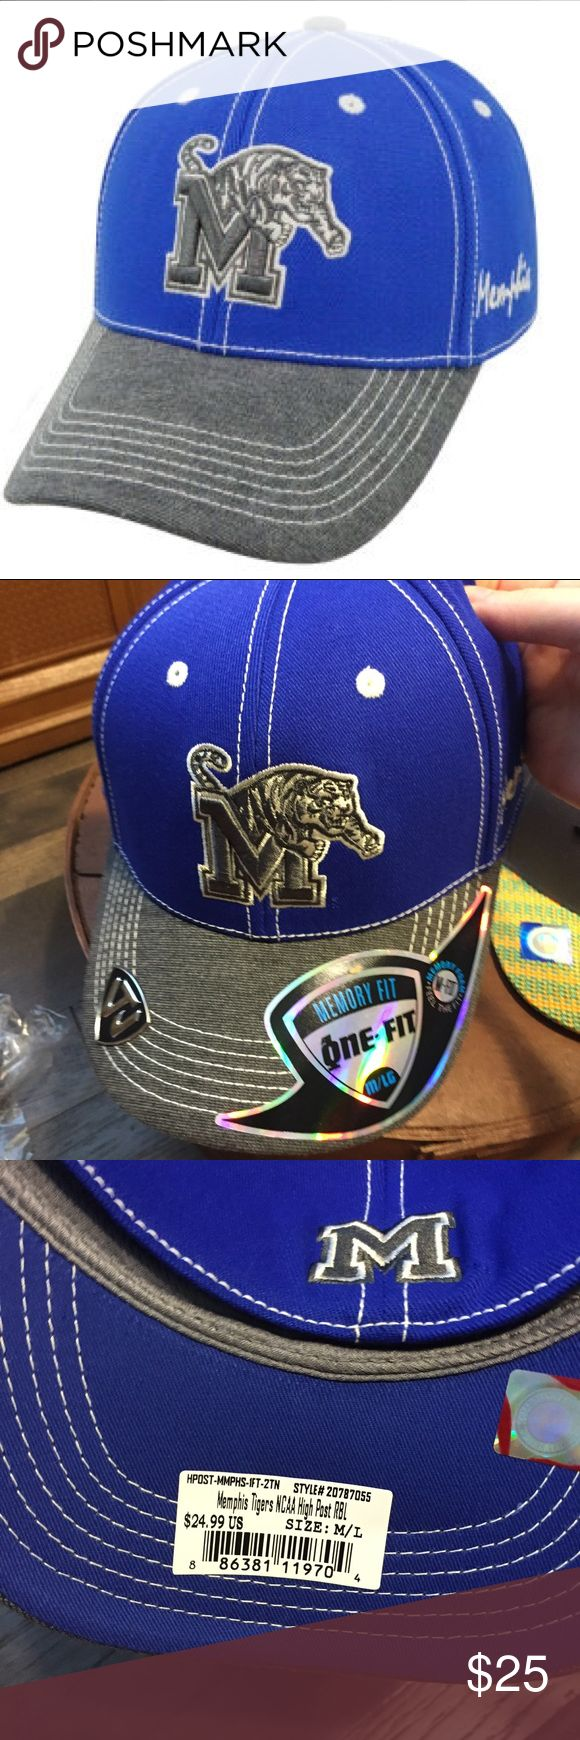 🆕 Memphis Tigers High Post Memory Fit Hat NWT M/L Brand new with tags! NCAA NCAA Accessories Hats